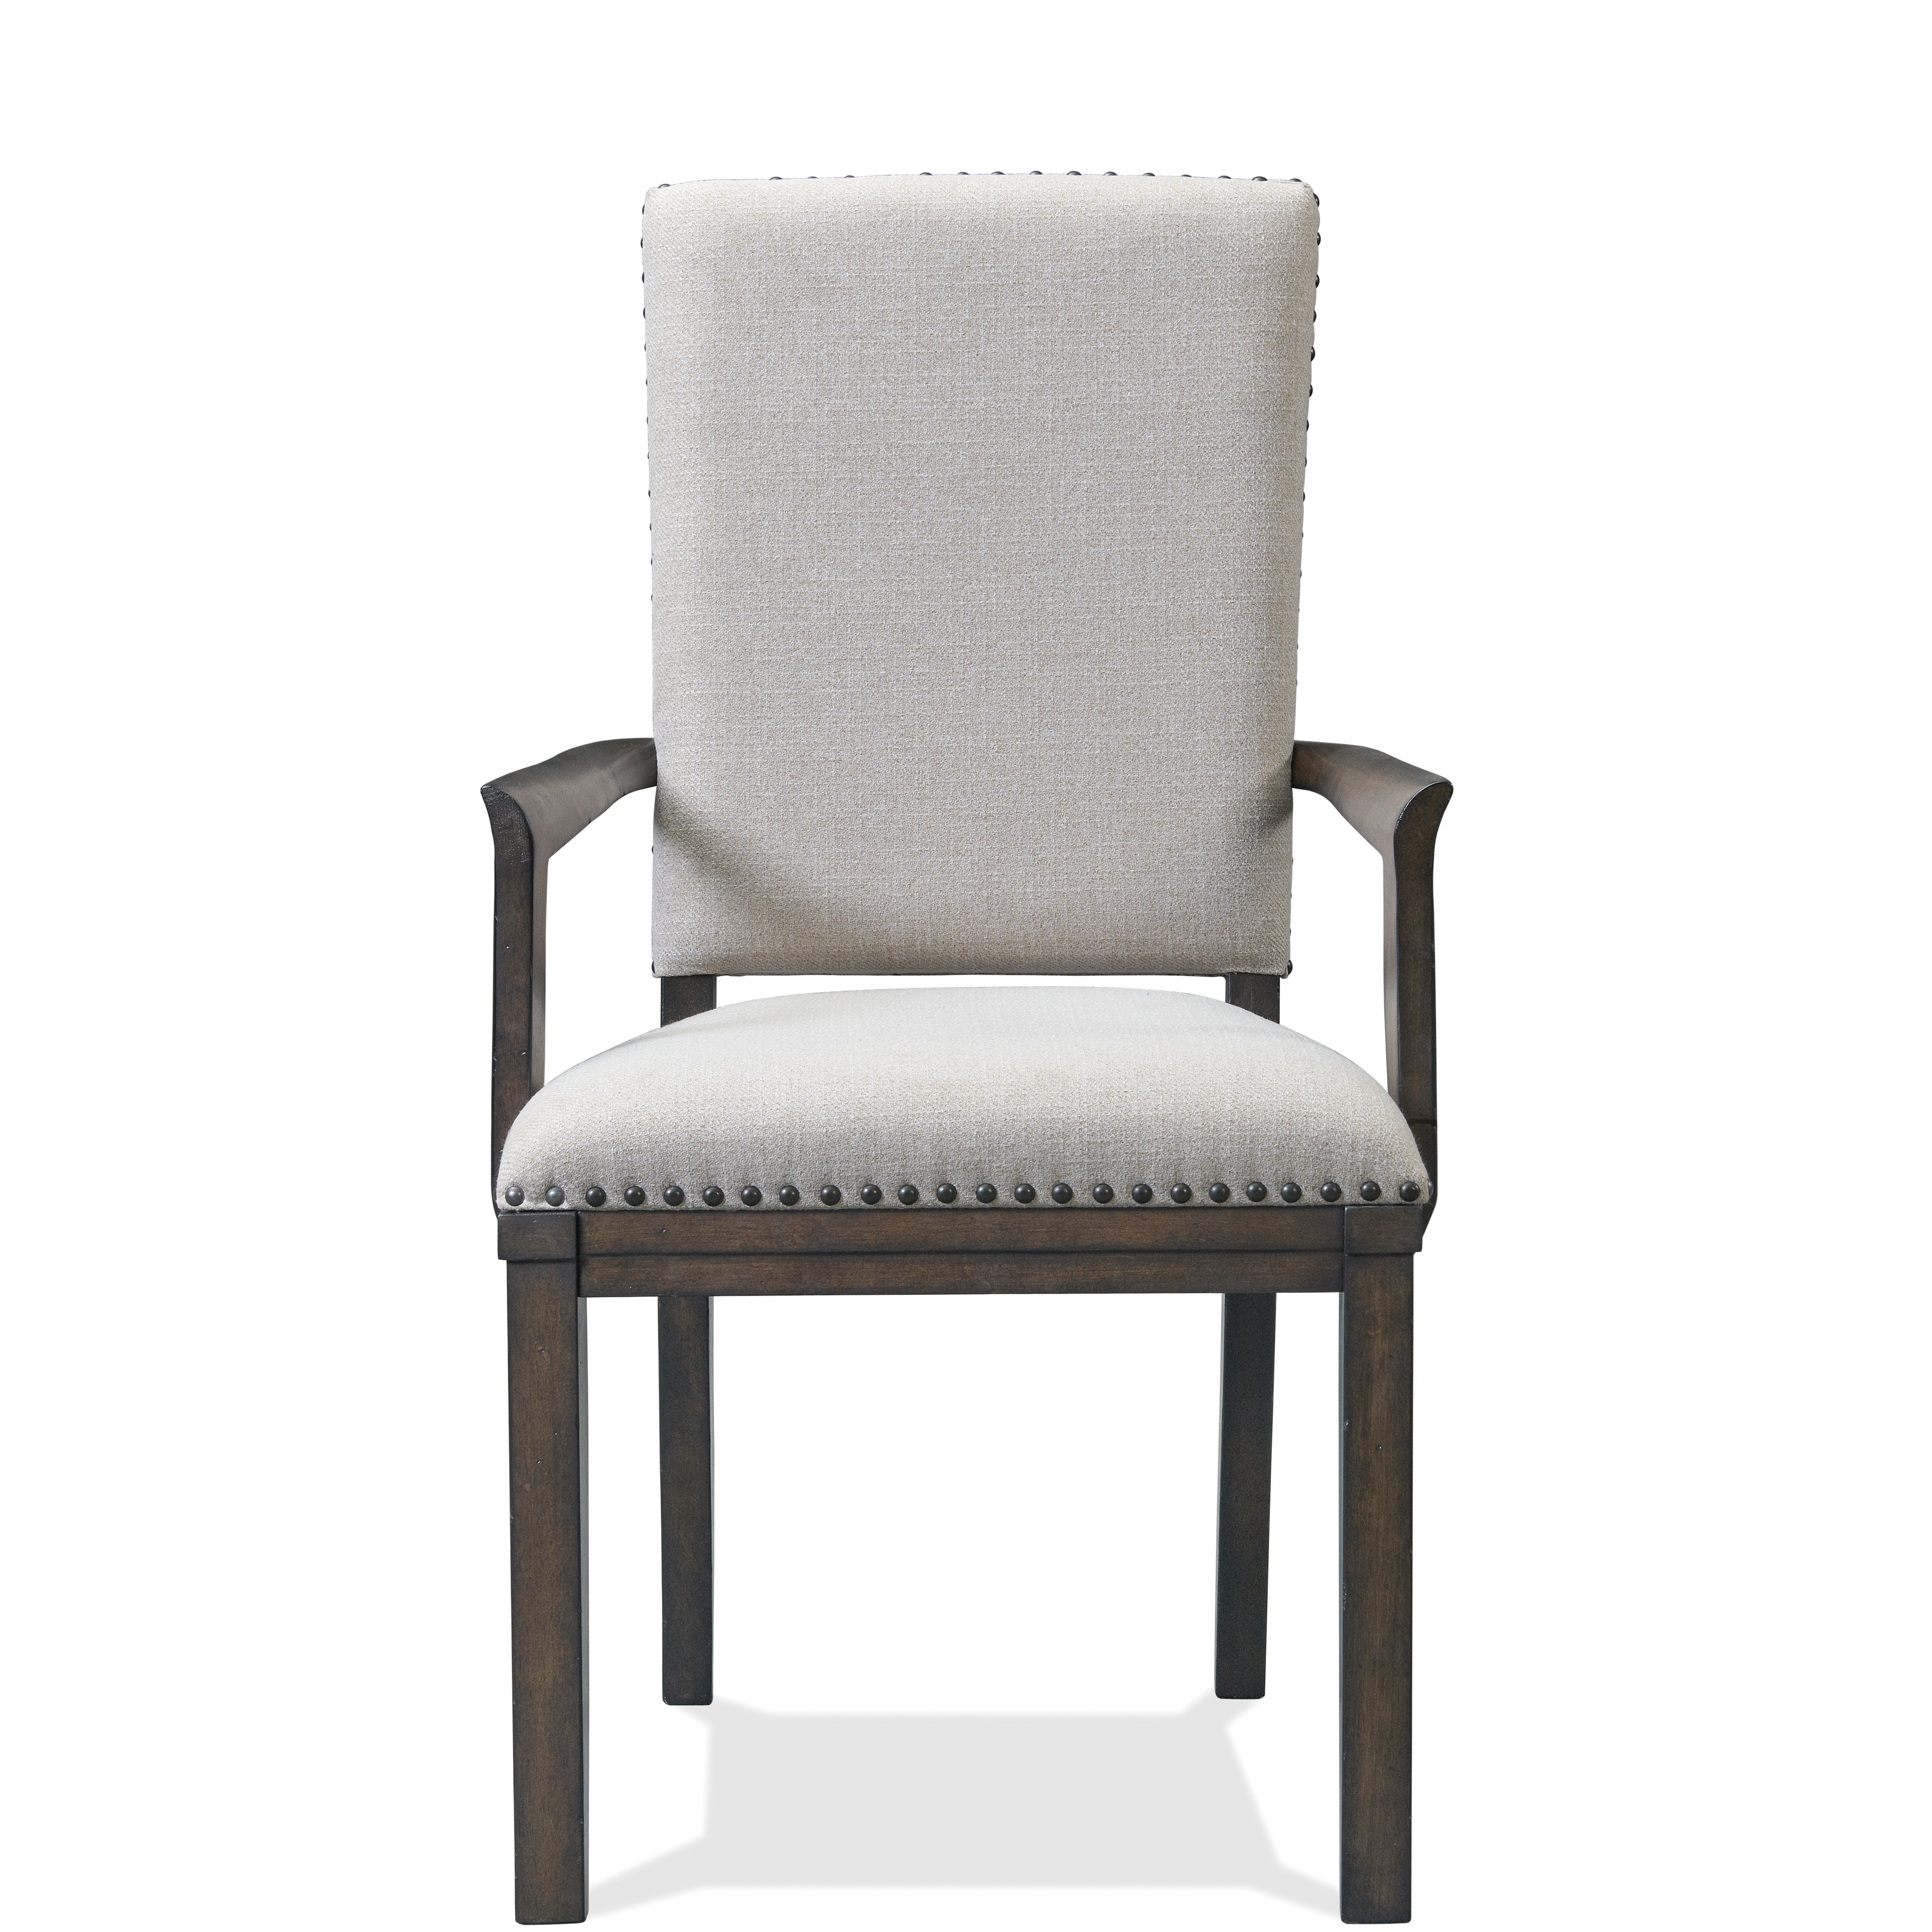 Forsyth Arm Chair by Riverside Furniture at Prime Brothers Furniture